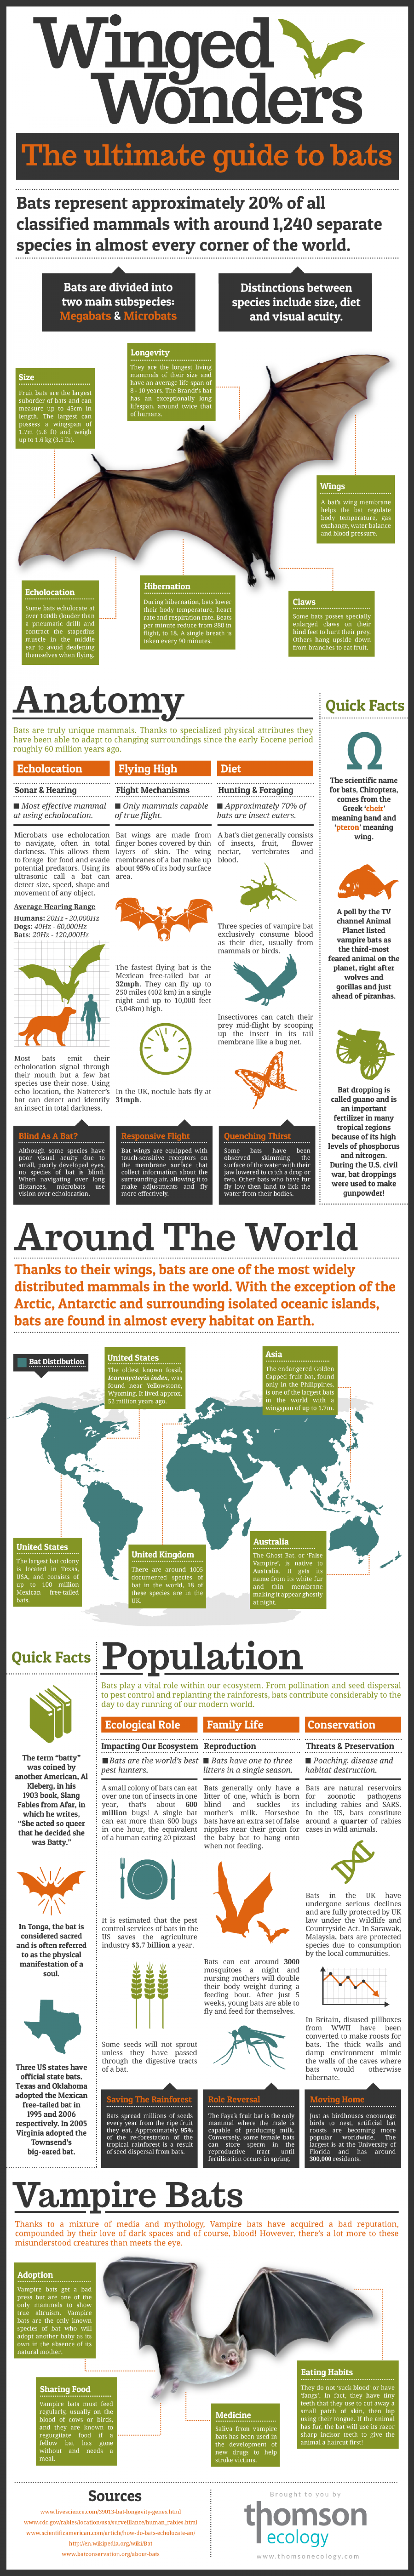 Winged Wonders Infographic